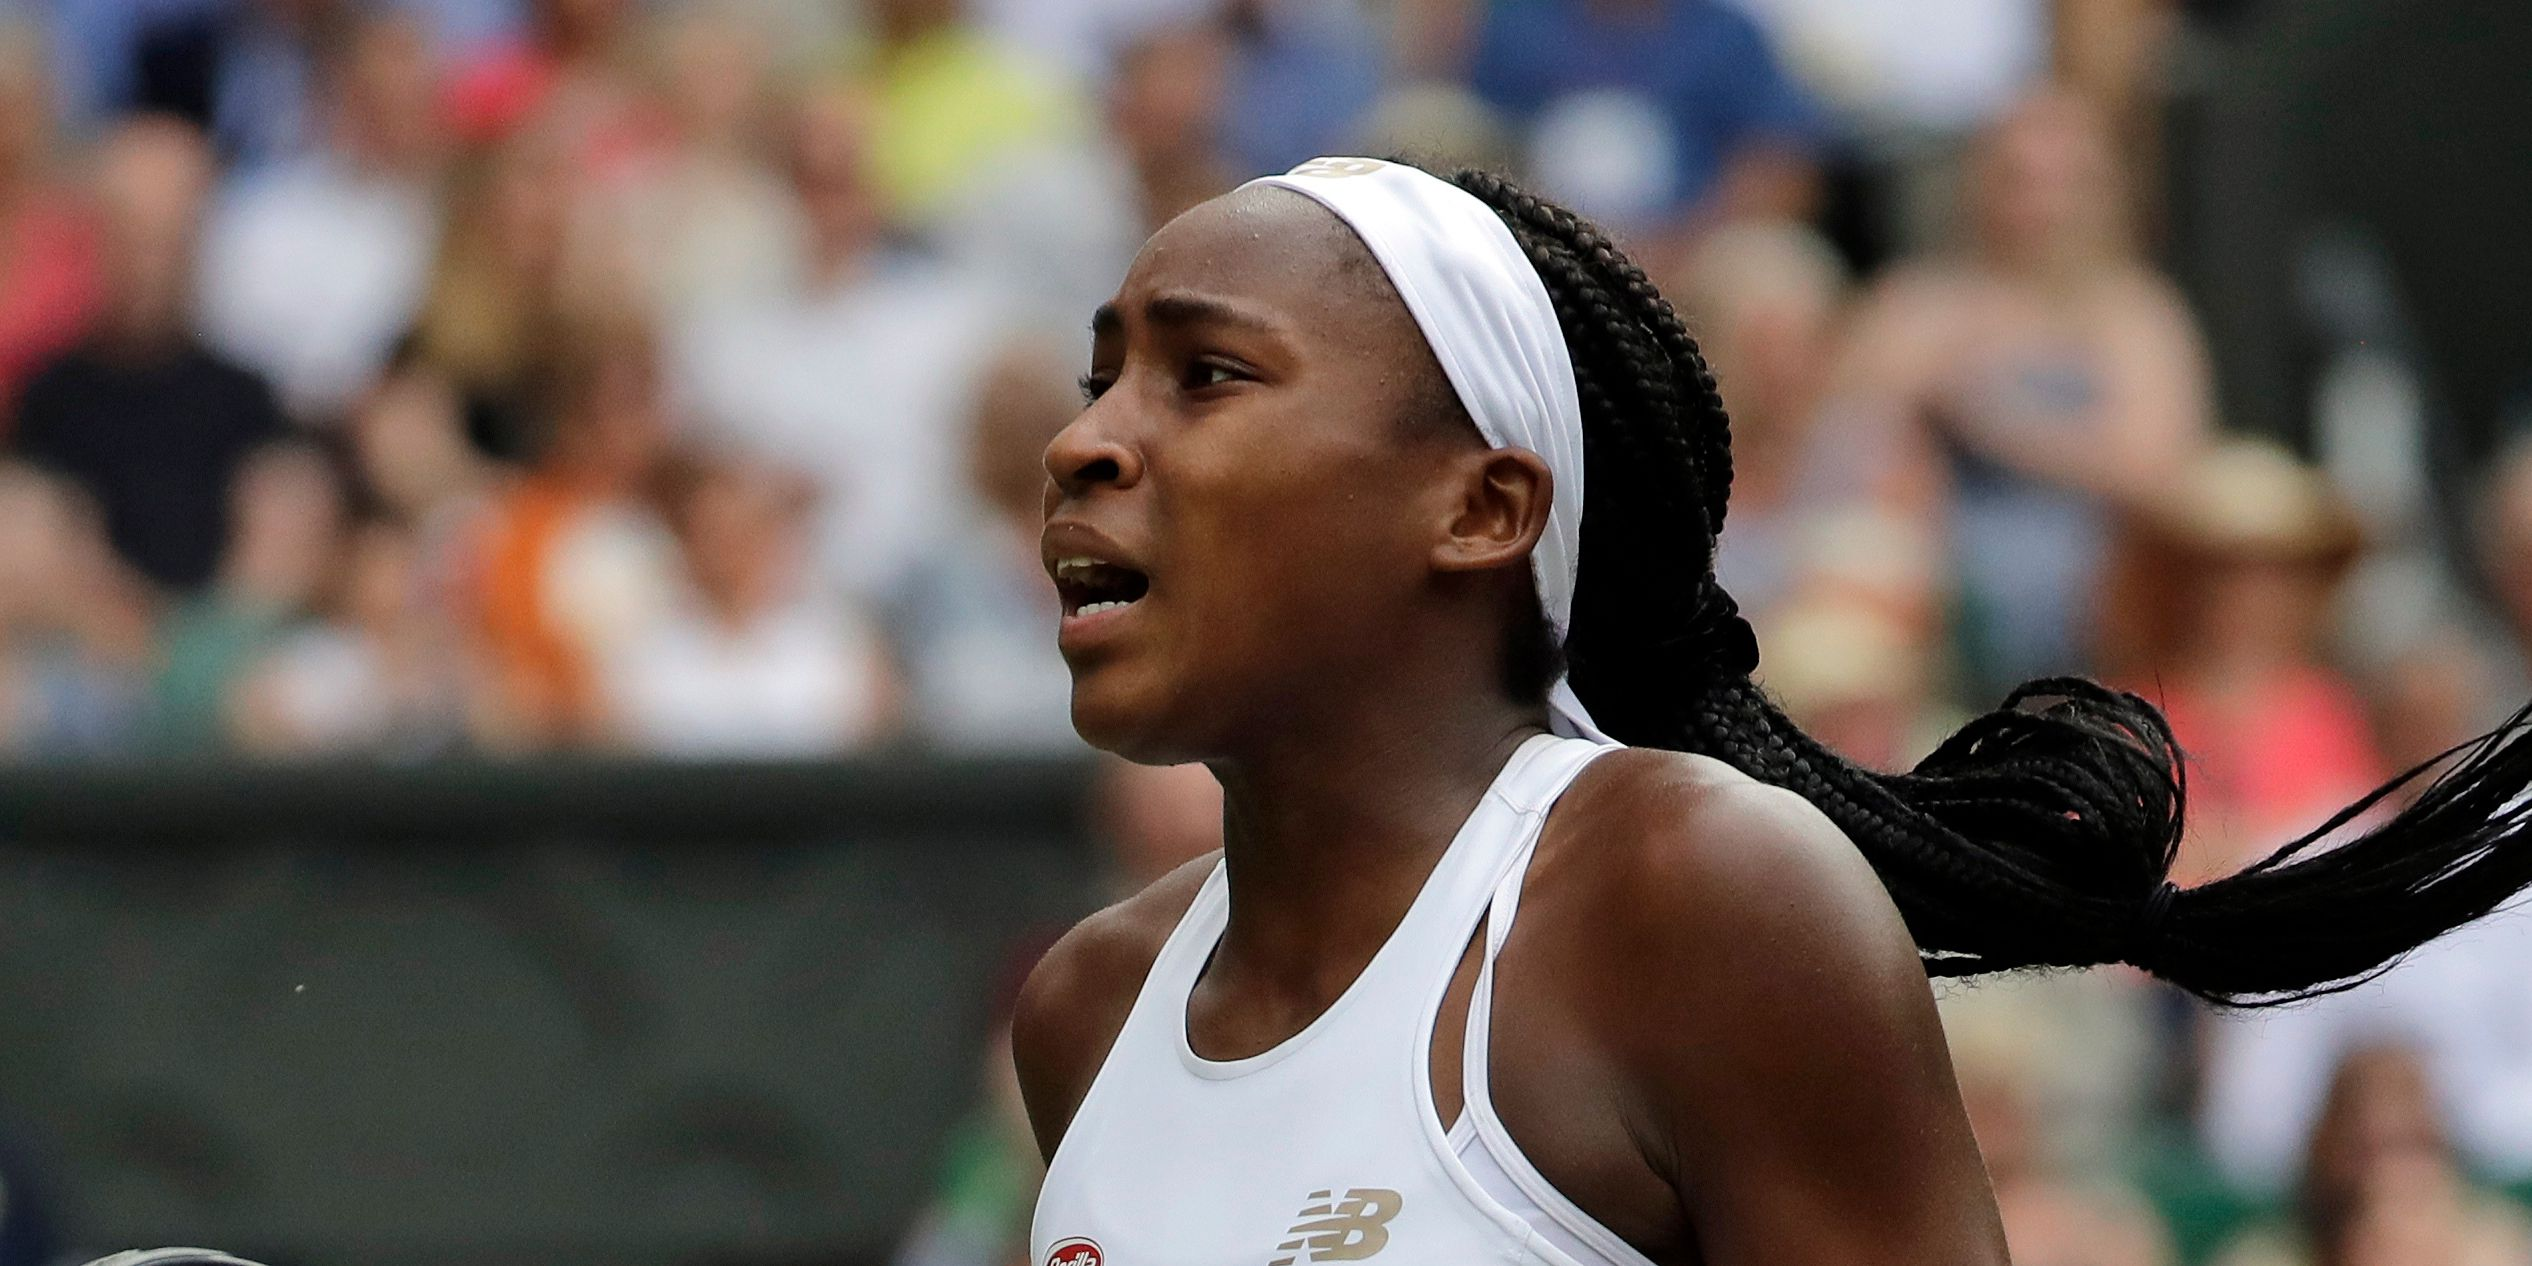 Coco Gauff loses at Wimbledon, while Williams wins again